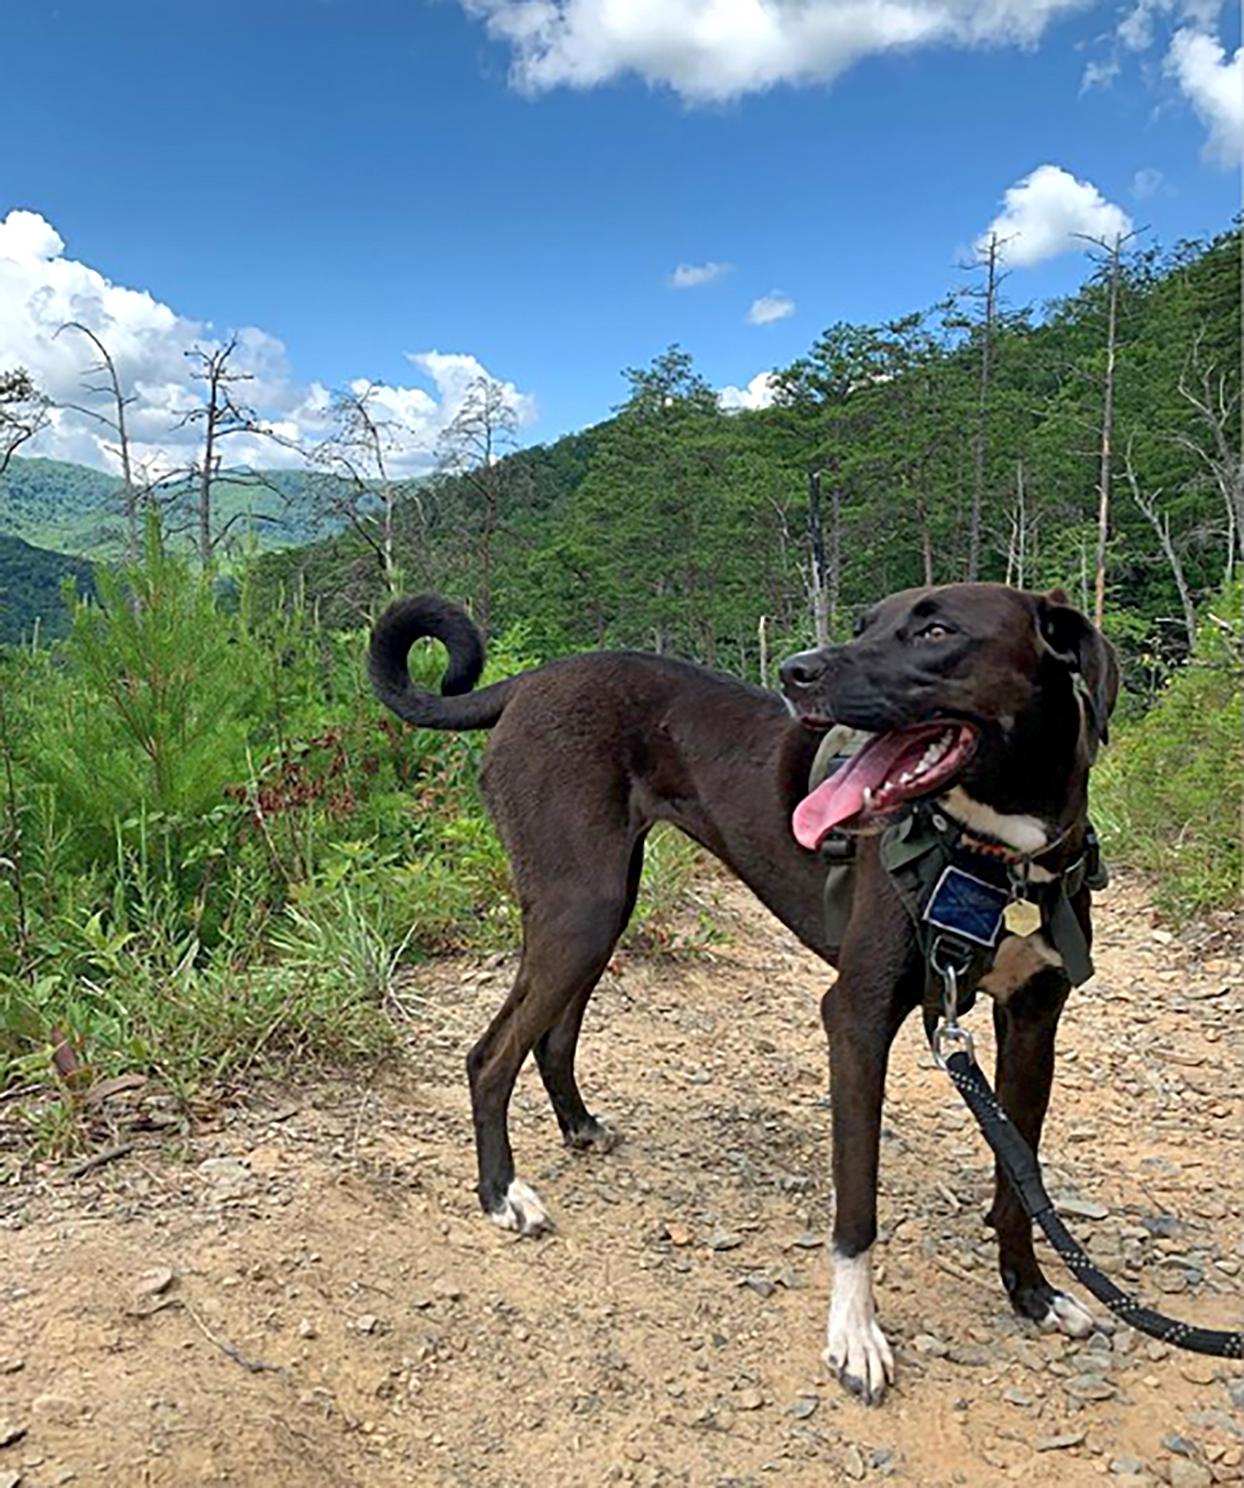 black labradane with dane body and lab face on a hiking trail